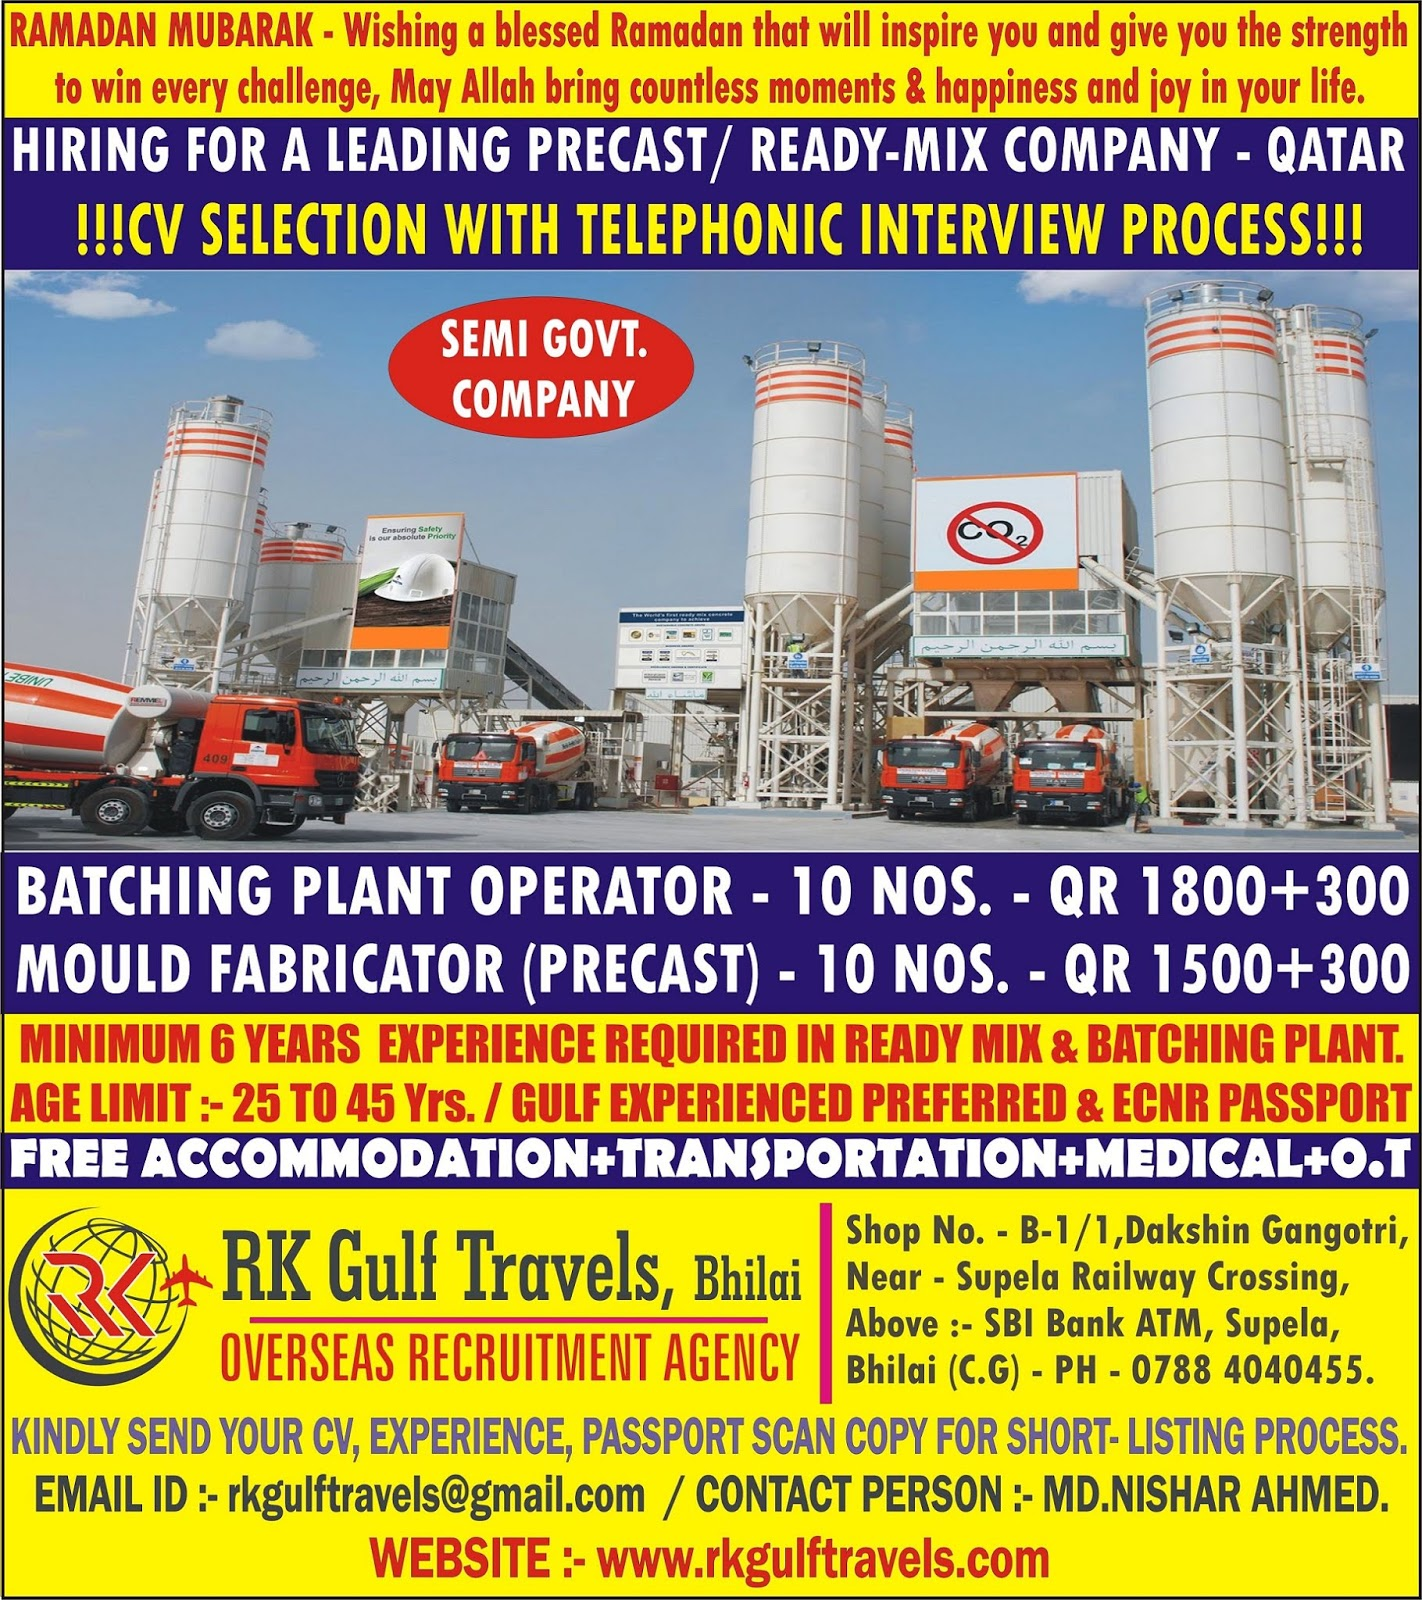 URGENTLY REQUIRED FOR QATAR - ⚫ BATCHING PLANT OPERATOR ⚫ MOULD